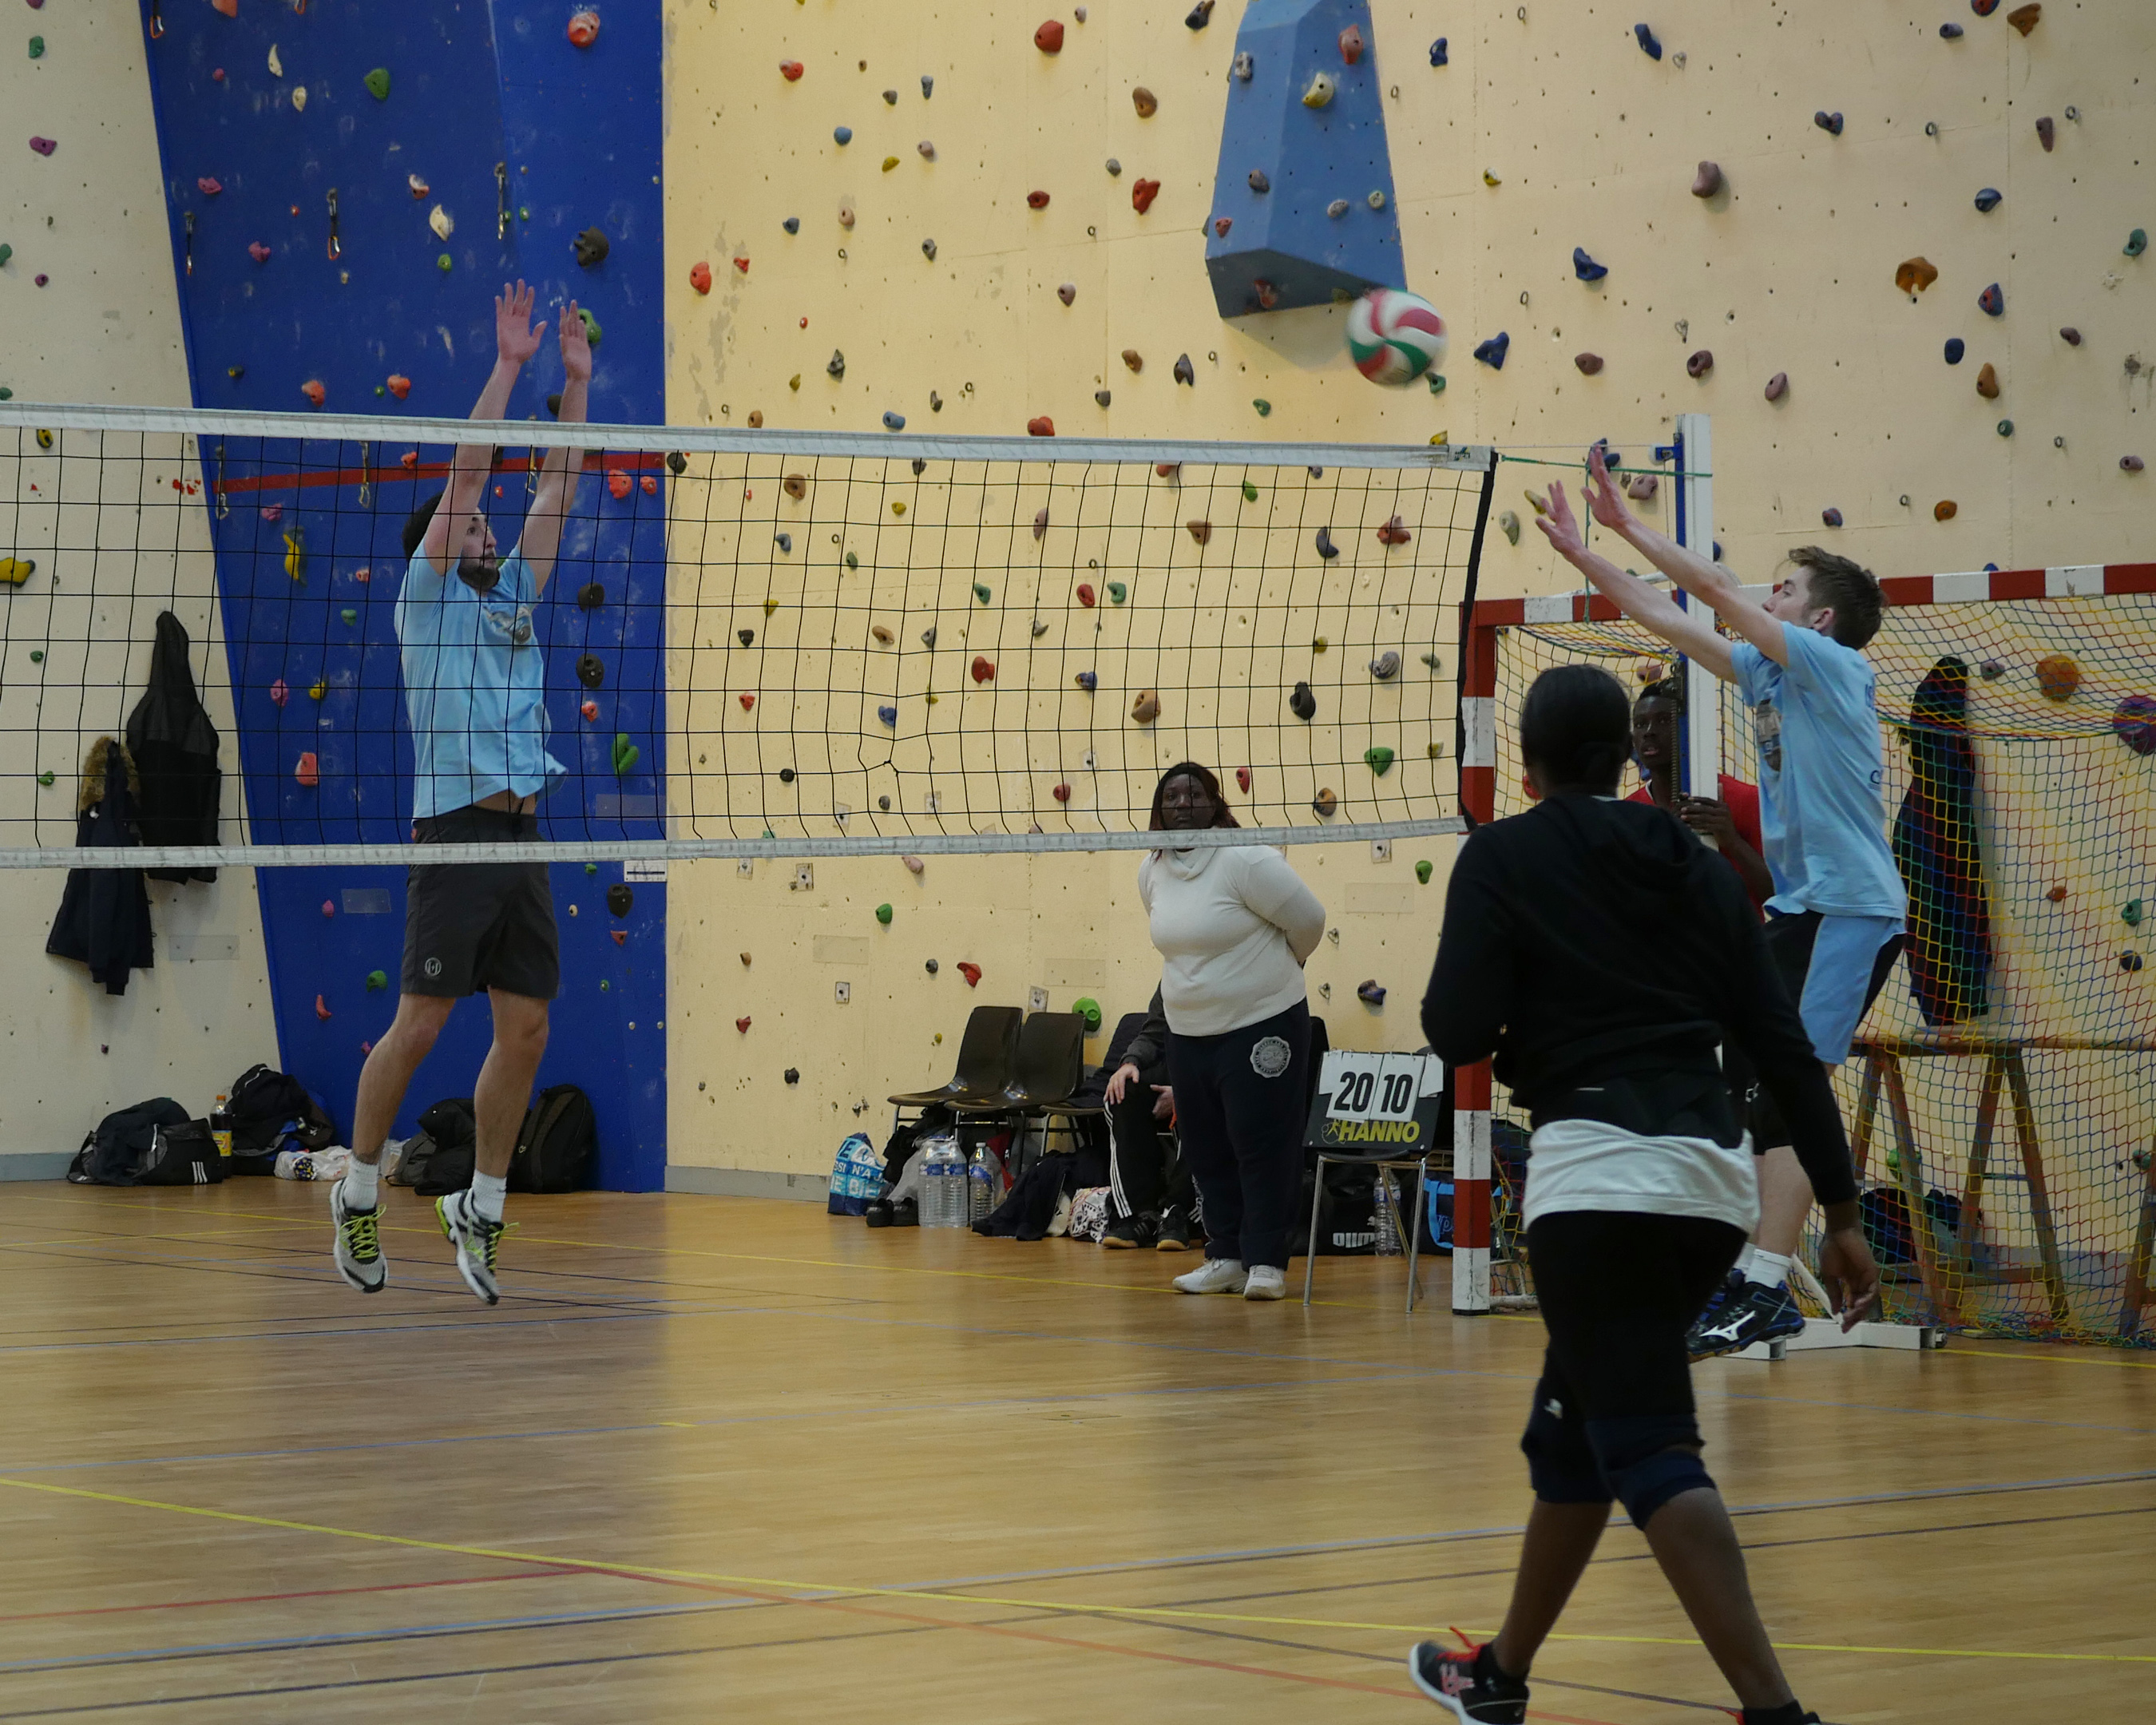 Tournoi Volley USMA 2015-42.JPG